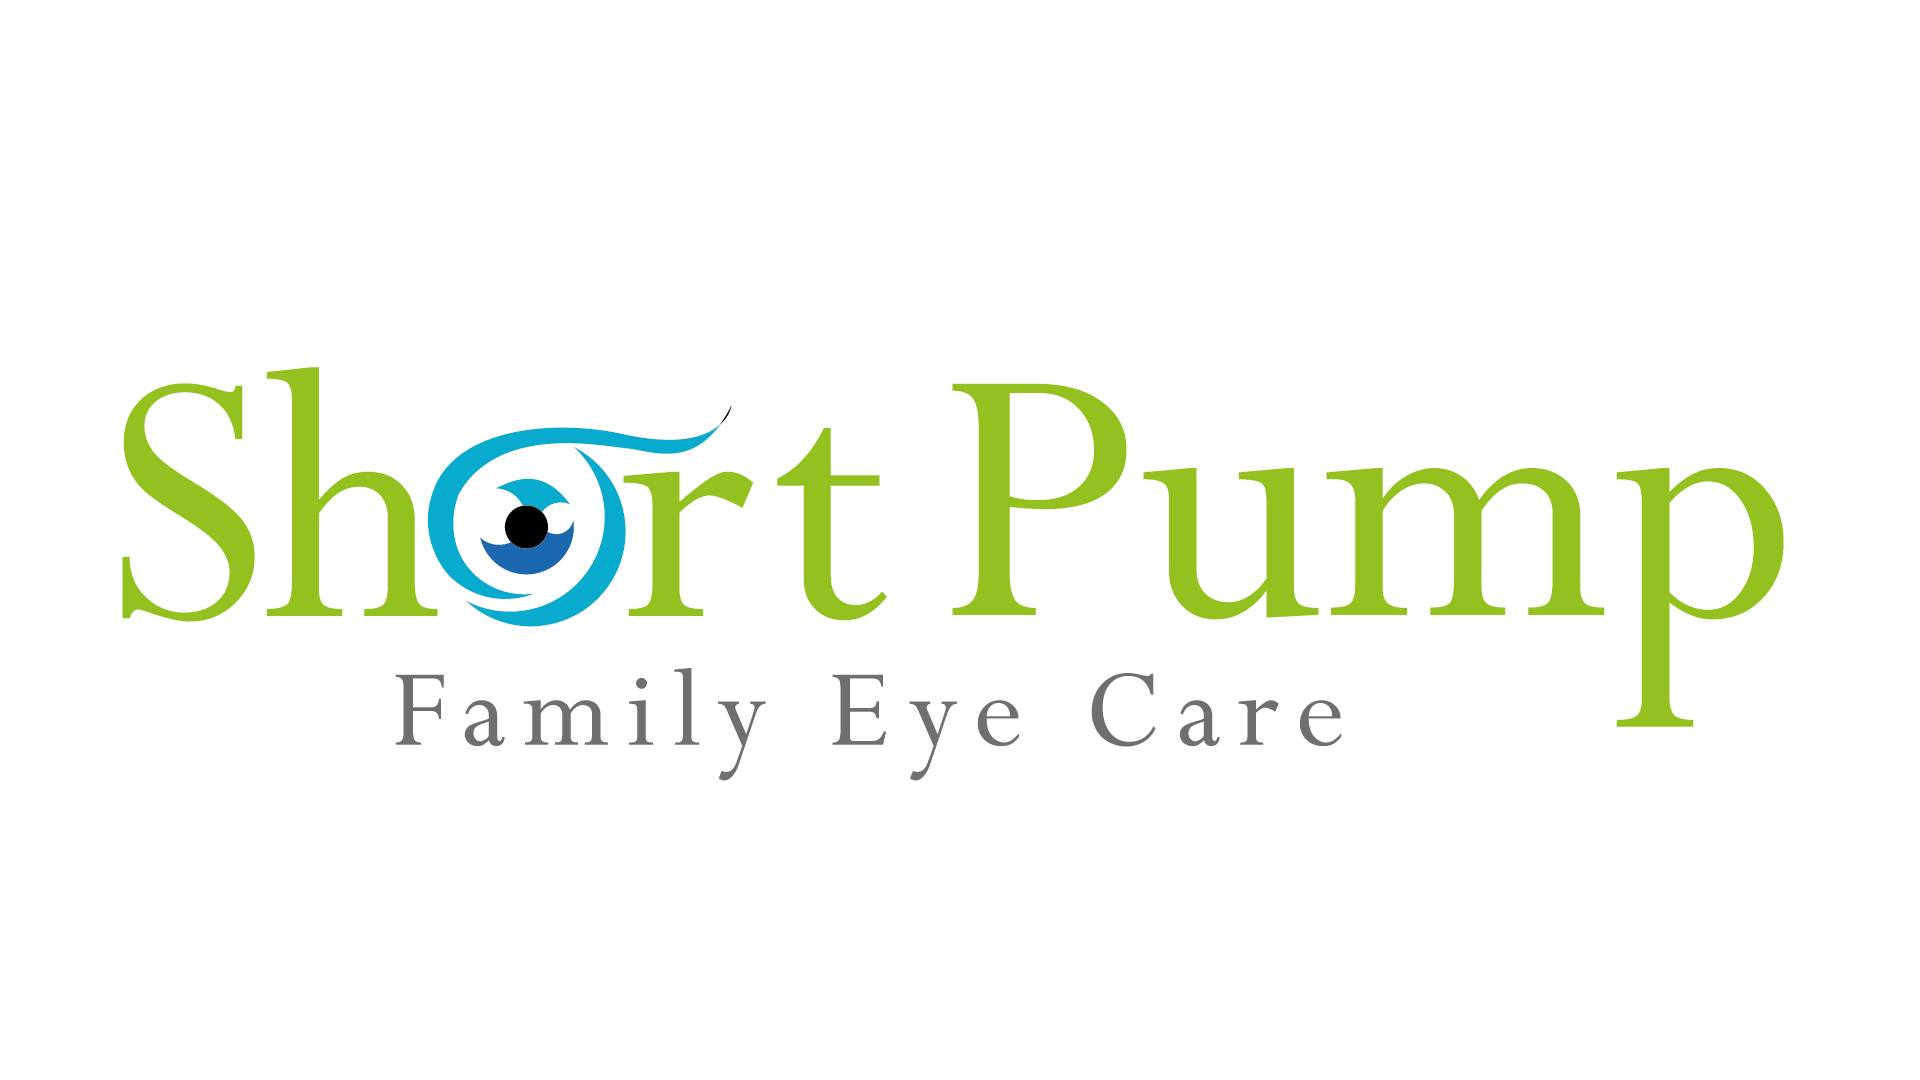 Short Pump Family Eye Care